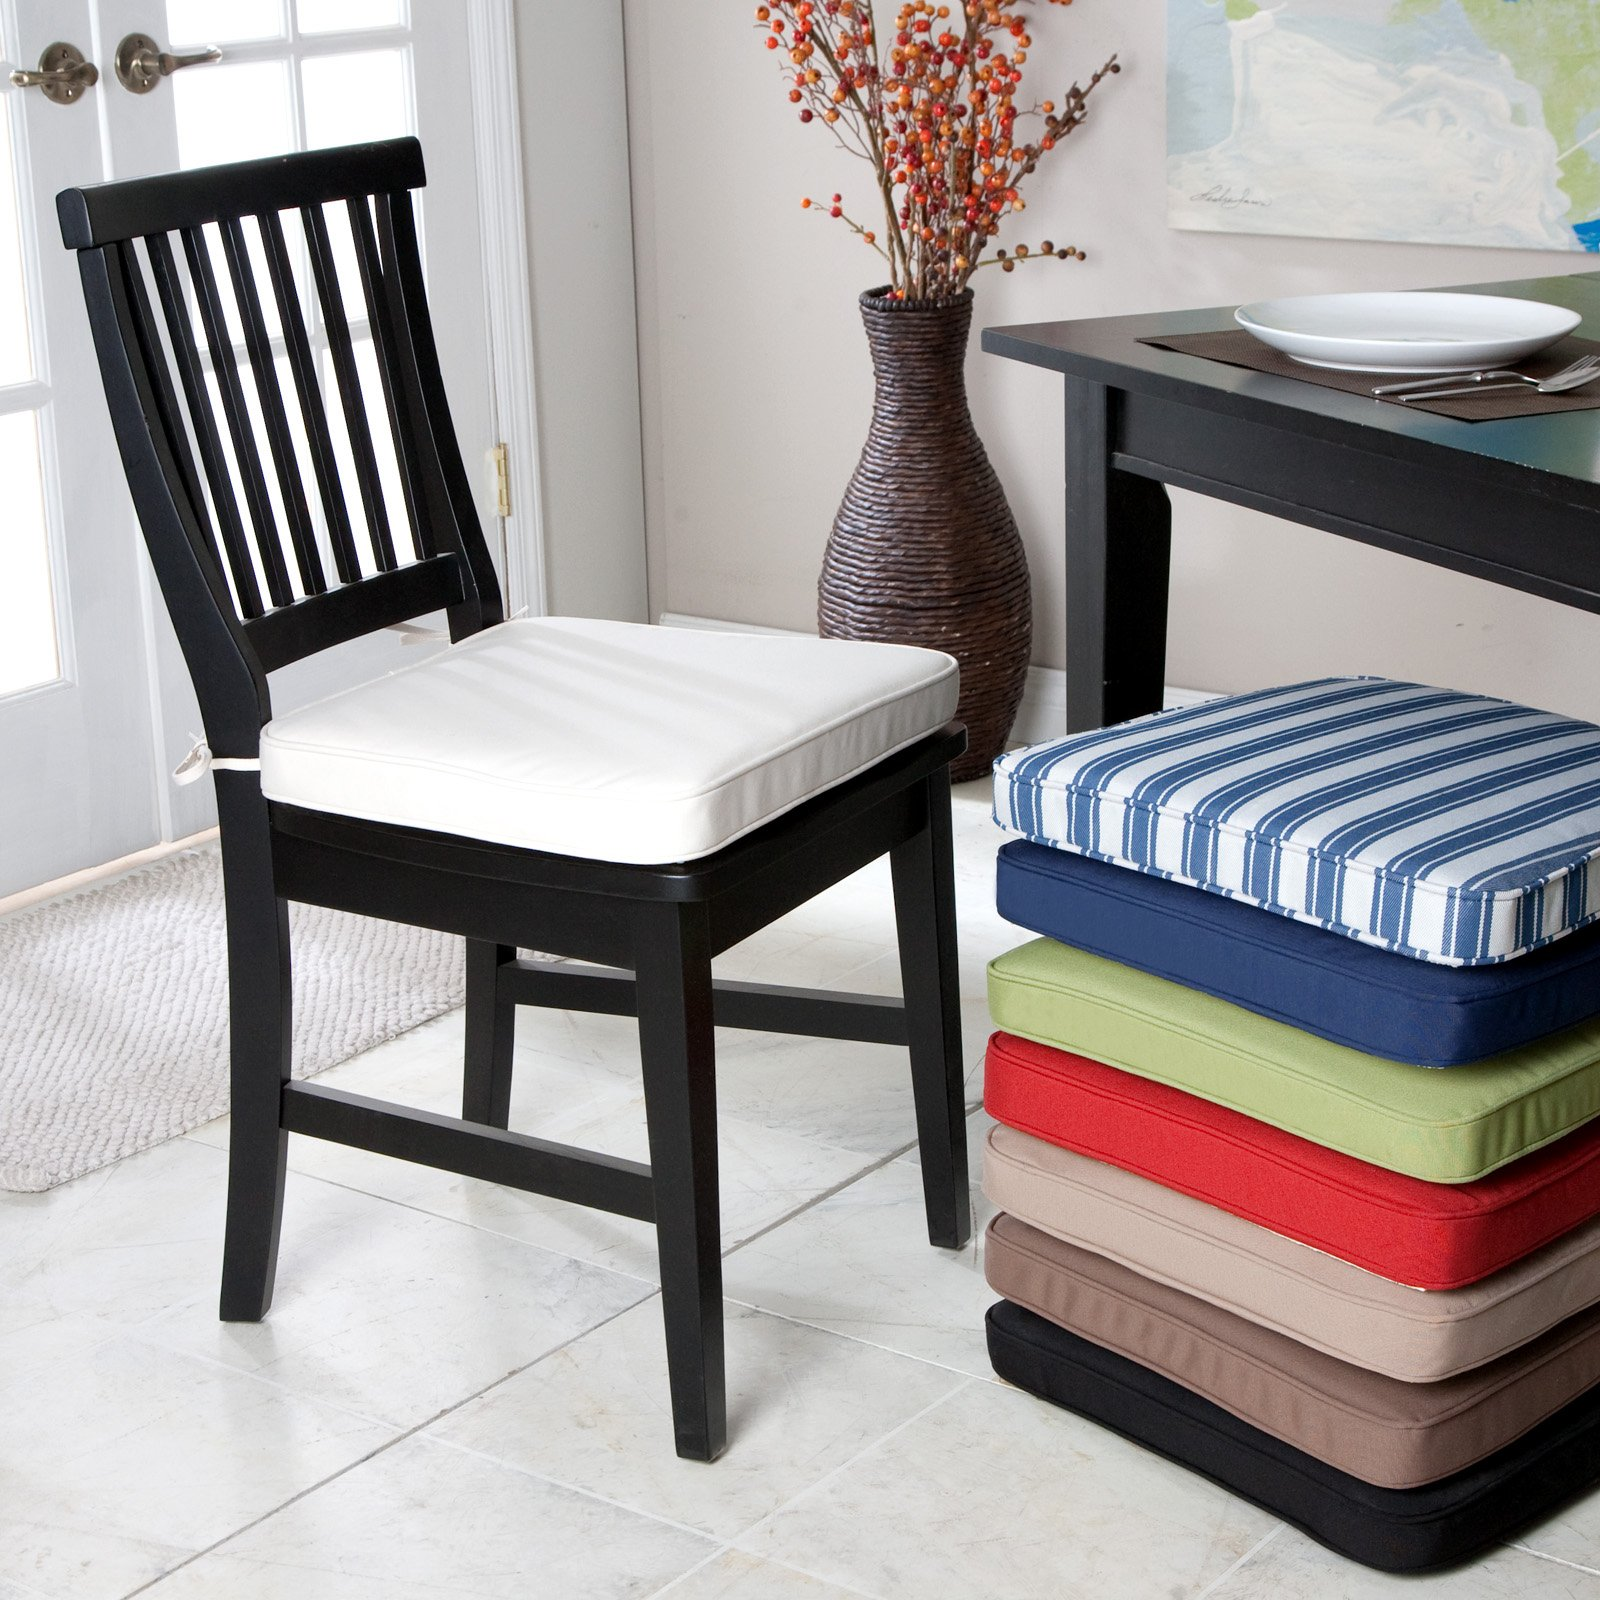 Plastic Seat Covers For Dining Room Chairs Plastic Seat Covers For Dining Room Chairs Large And